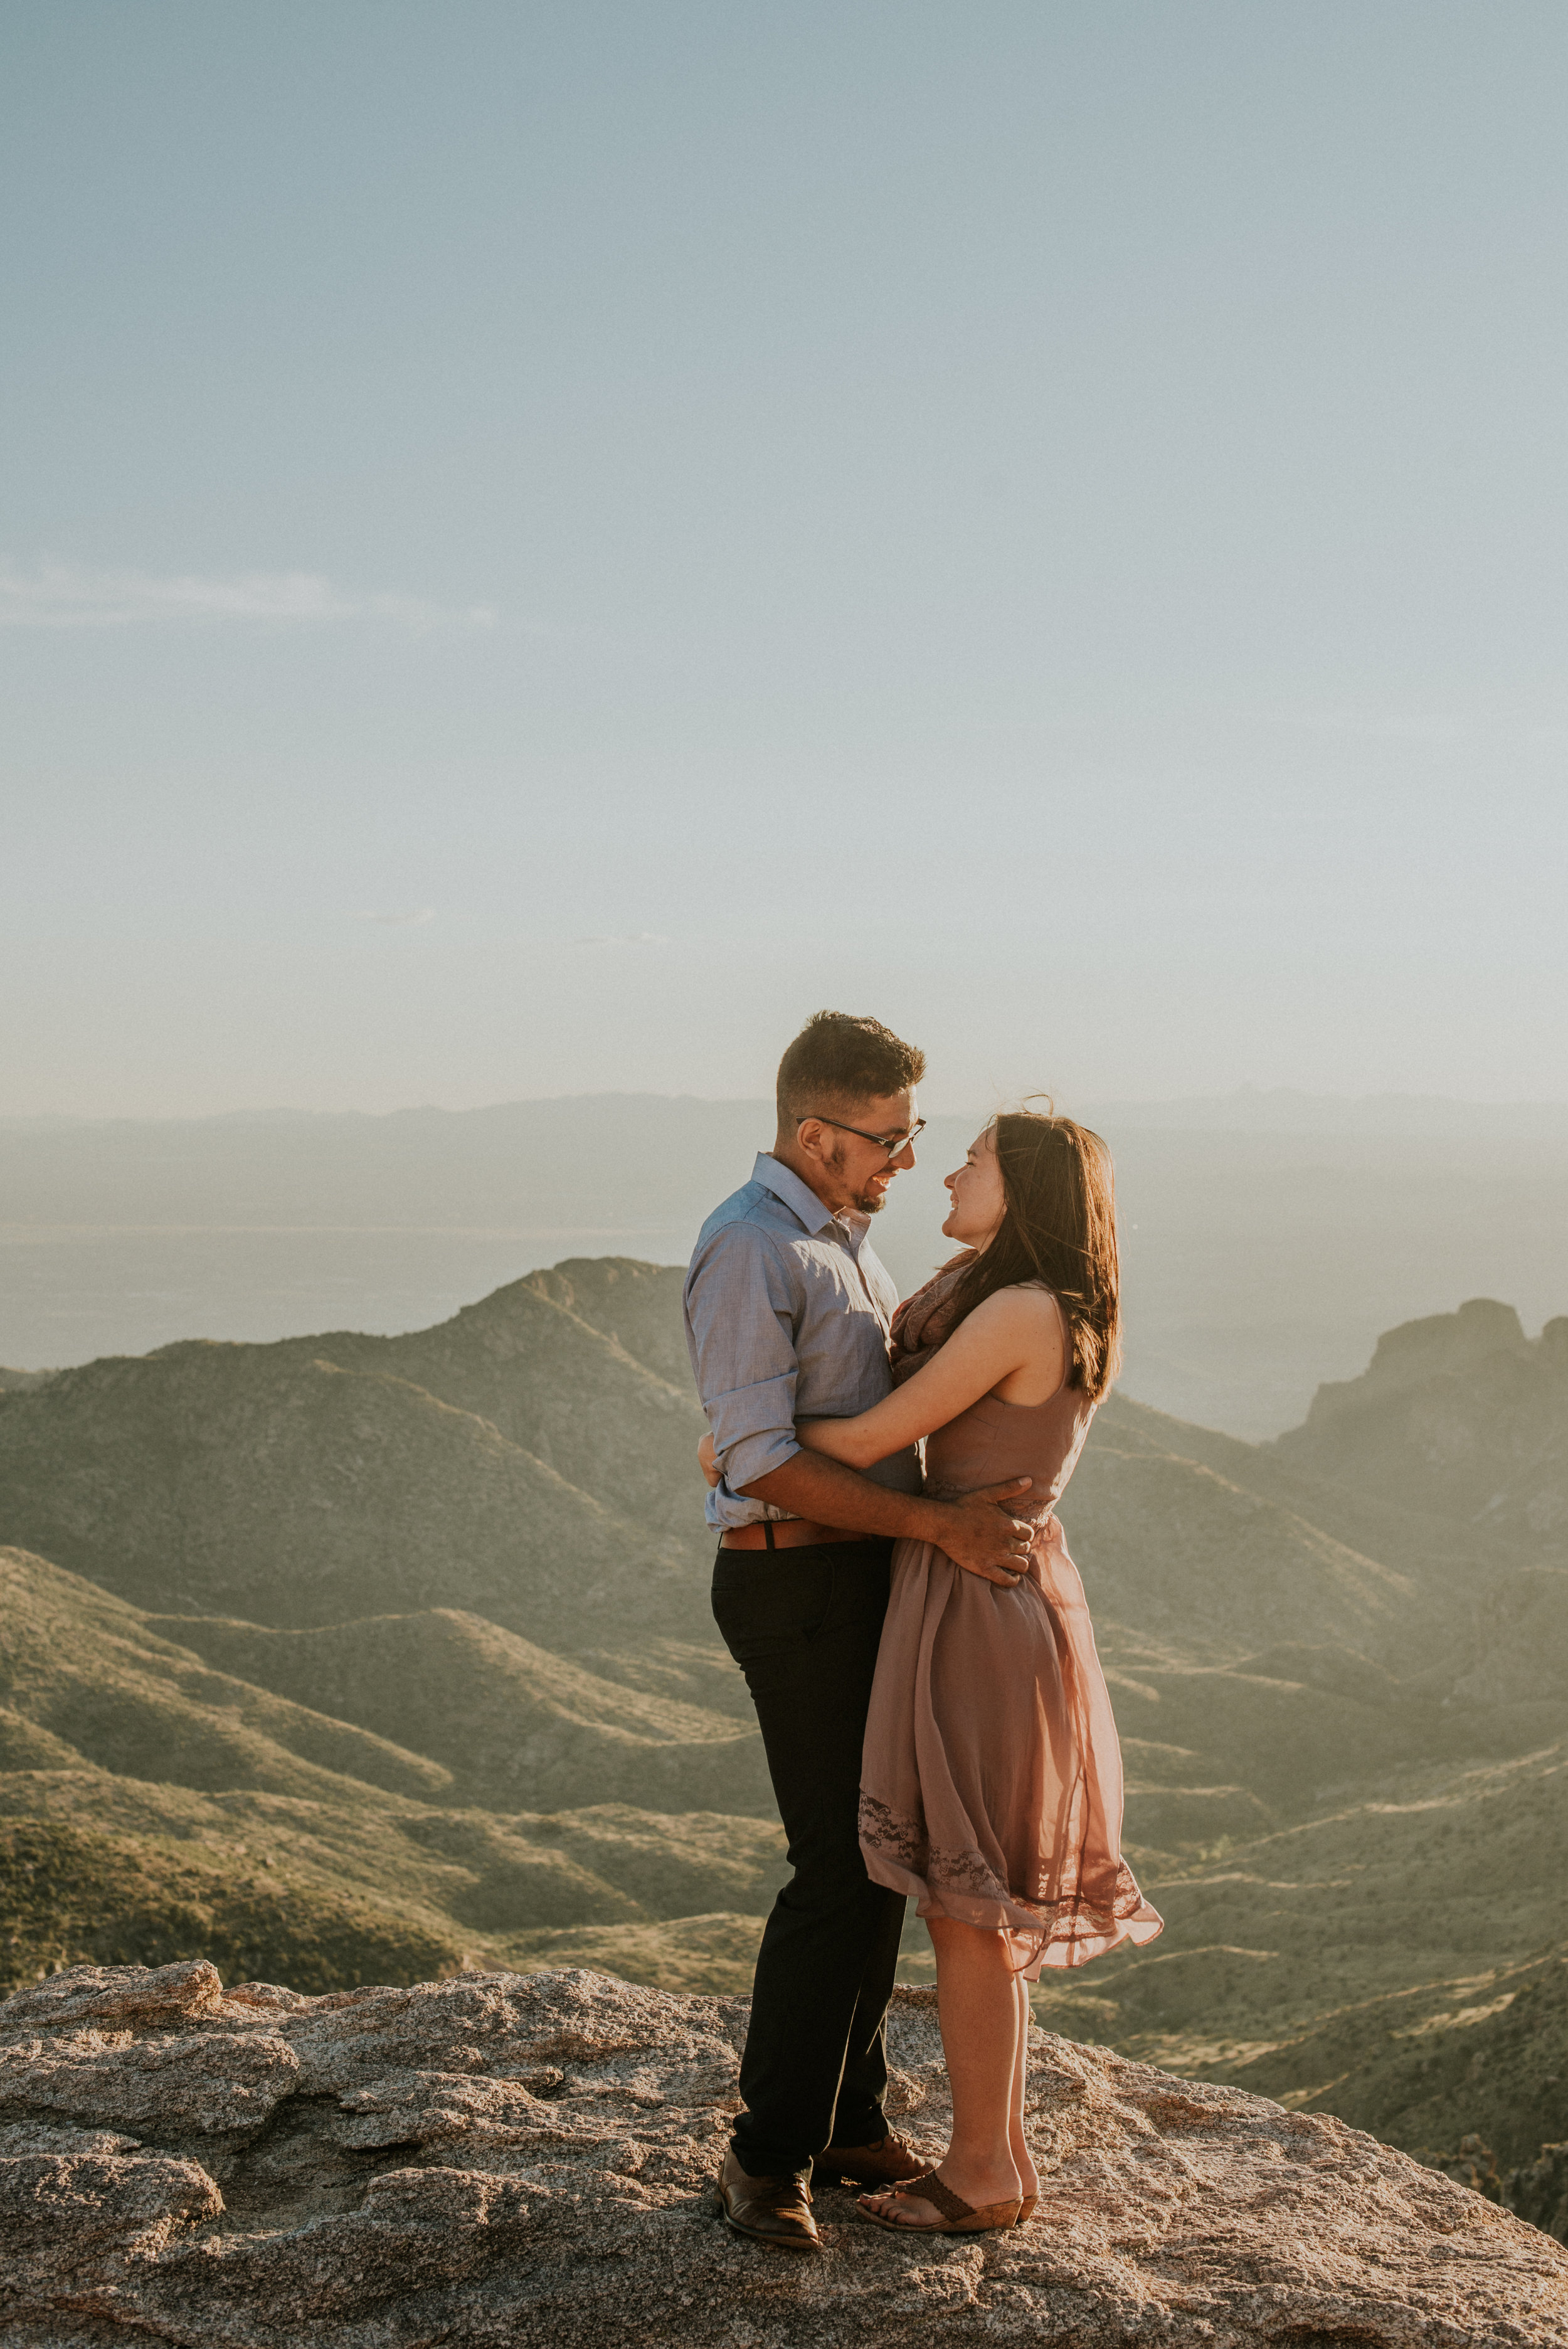 Romantic Fall Mountain Engagement Session Mount Lemmon-55.jpg